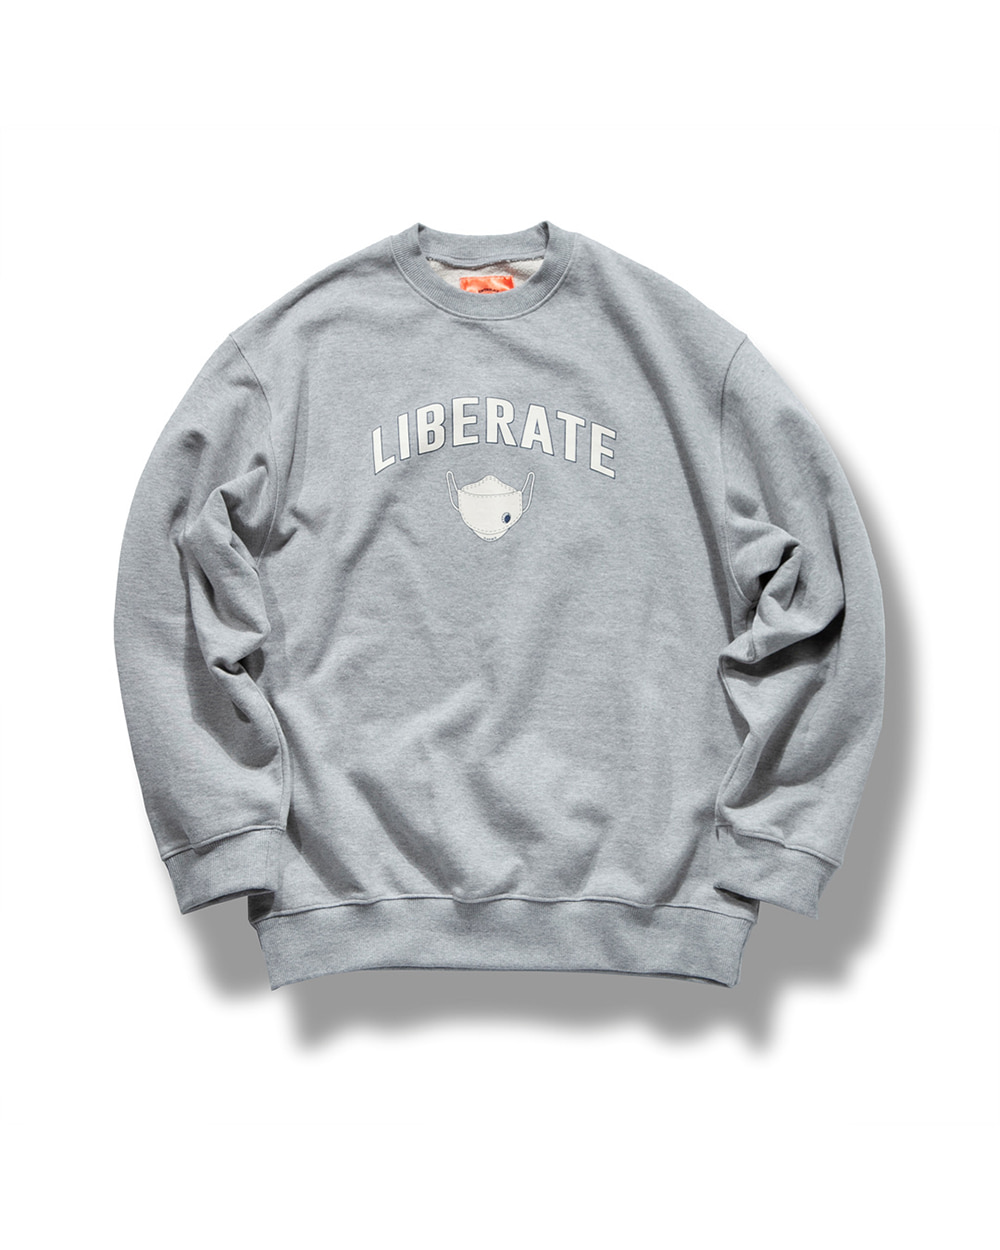 (VLADIMIR) LIBERATE SWEAT SHIRTS MELANGE GRAY